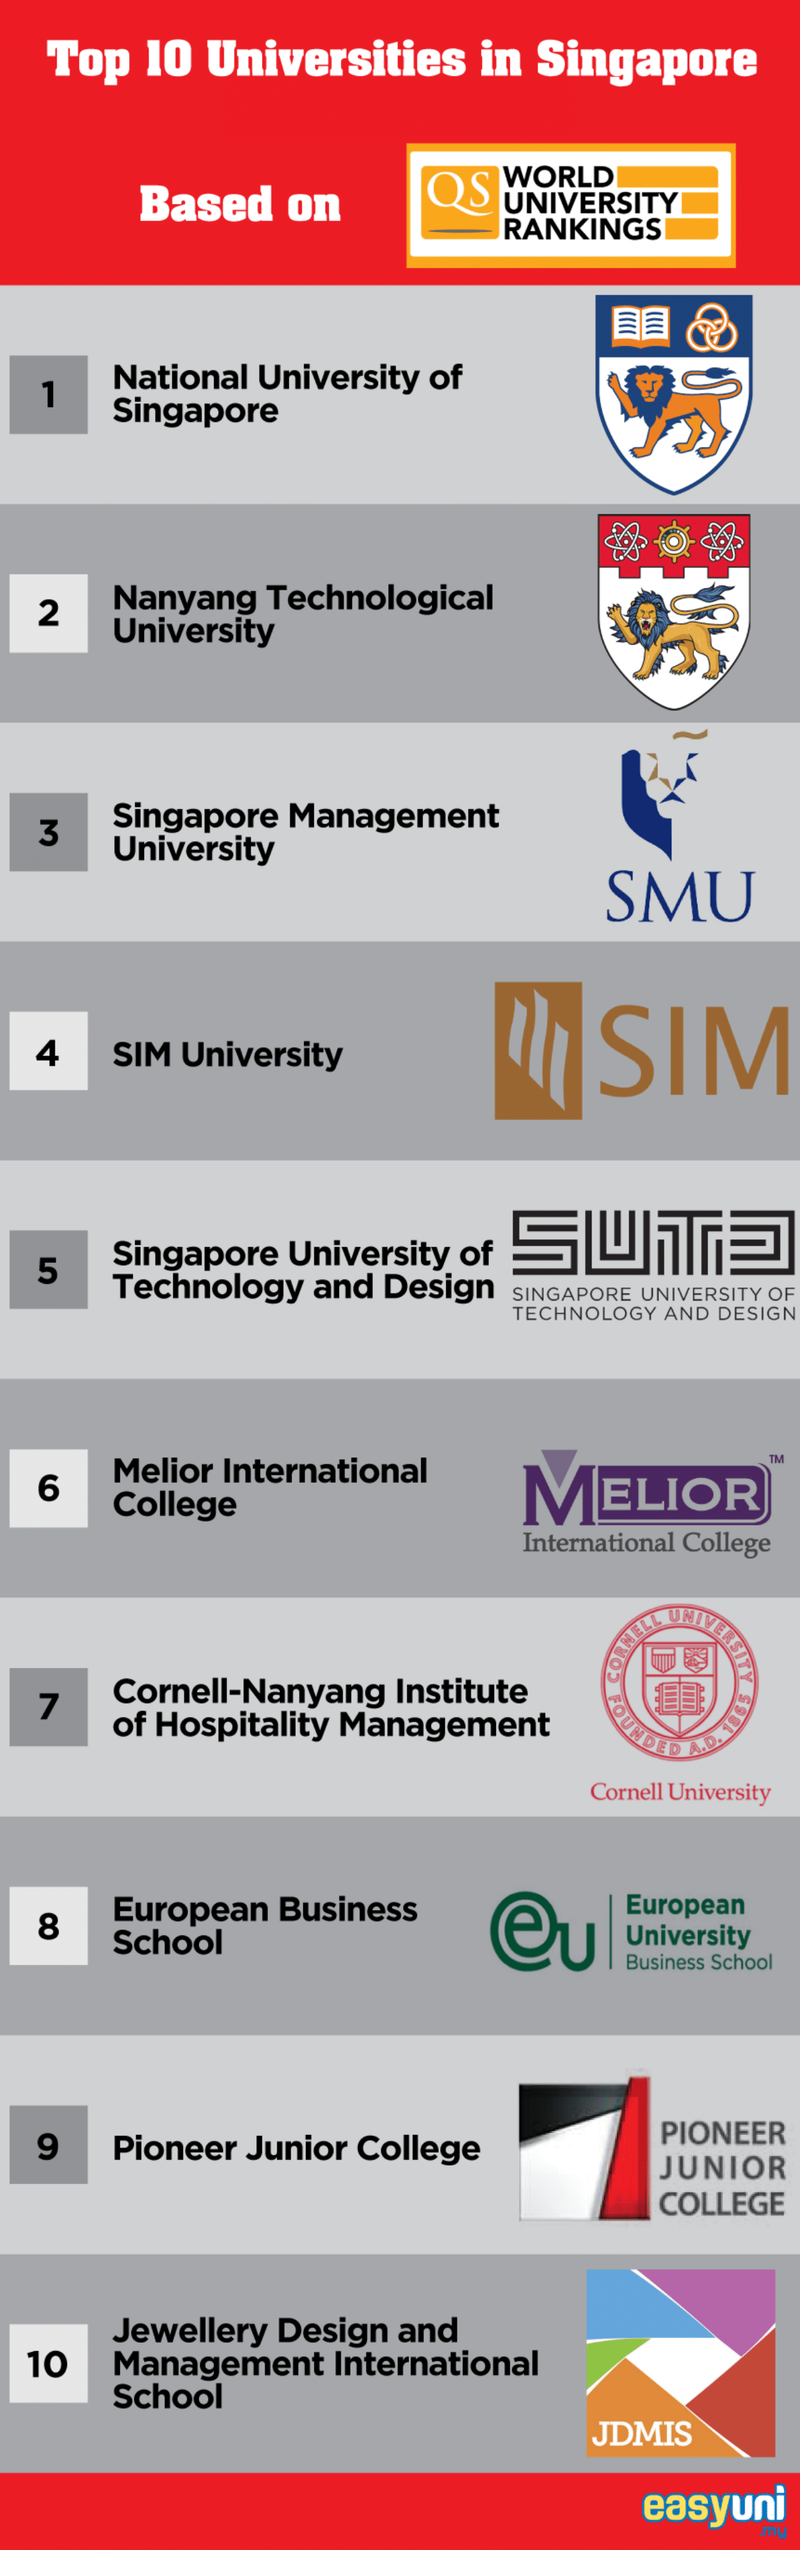 top universities in singapore 2020